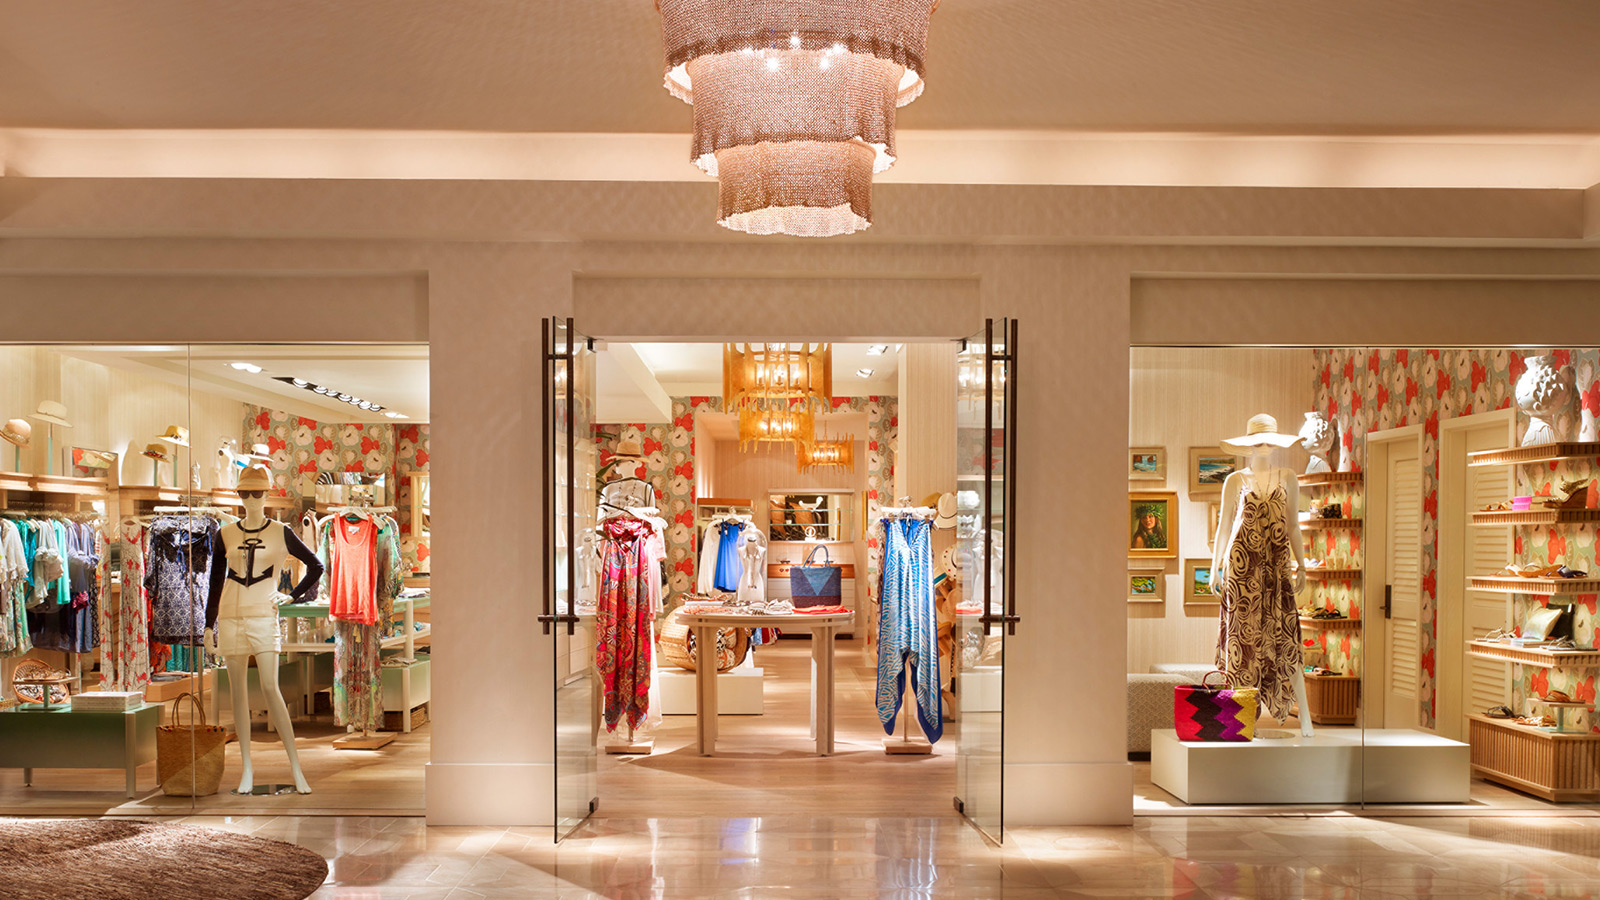 accf2ce3ea Shop the collection of one-of-a-kind luxury boutiques at Four Seasons Resort  Lanai. Located just off the reception lobby